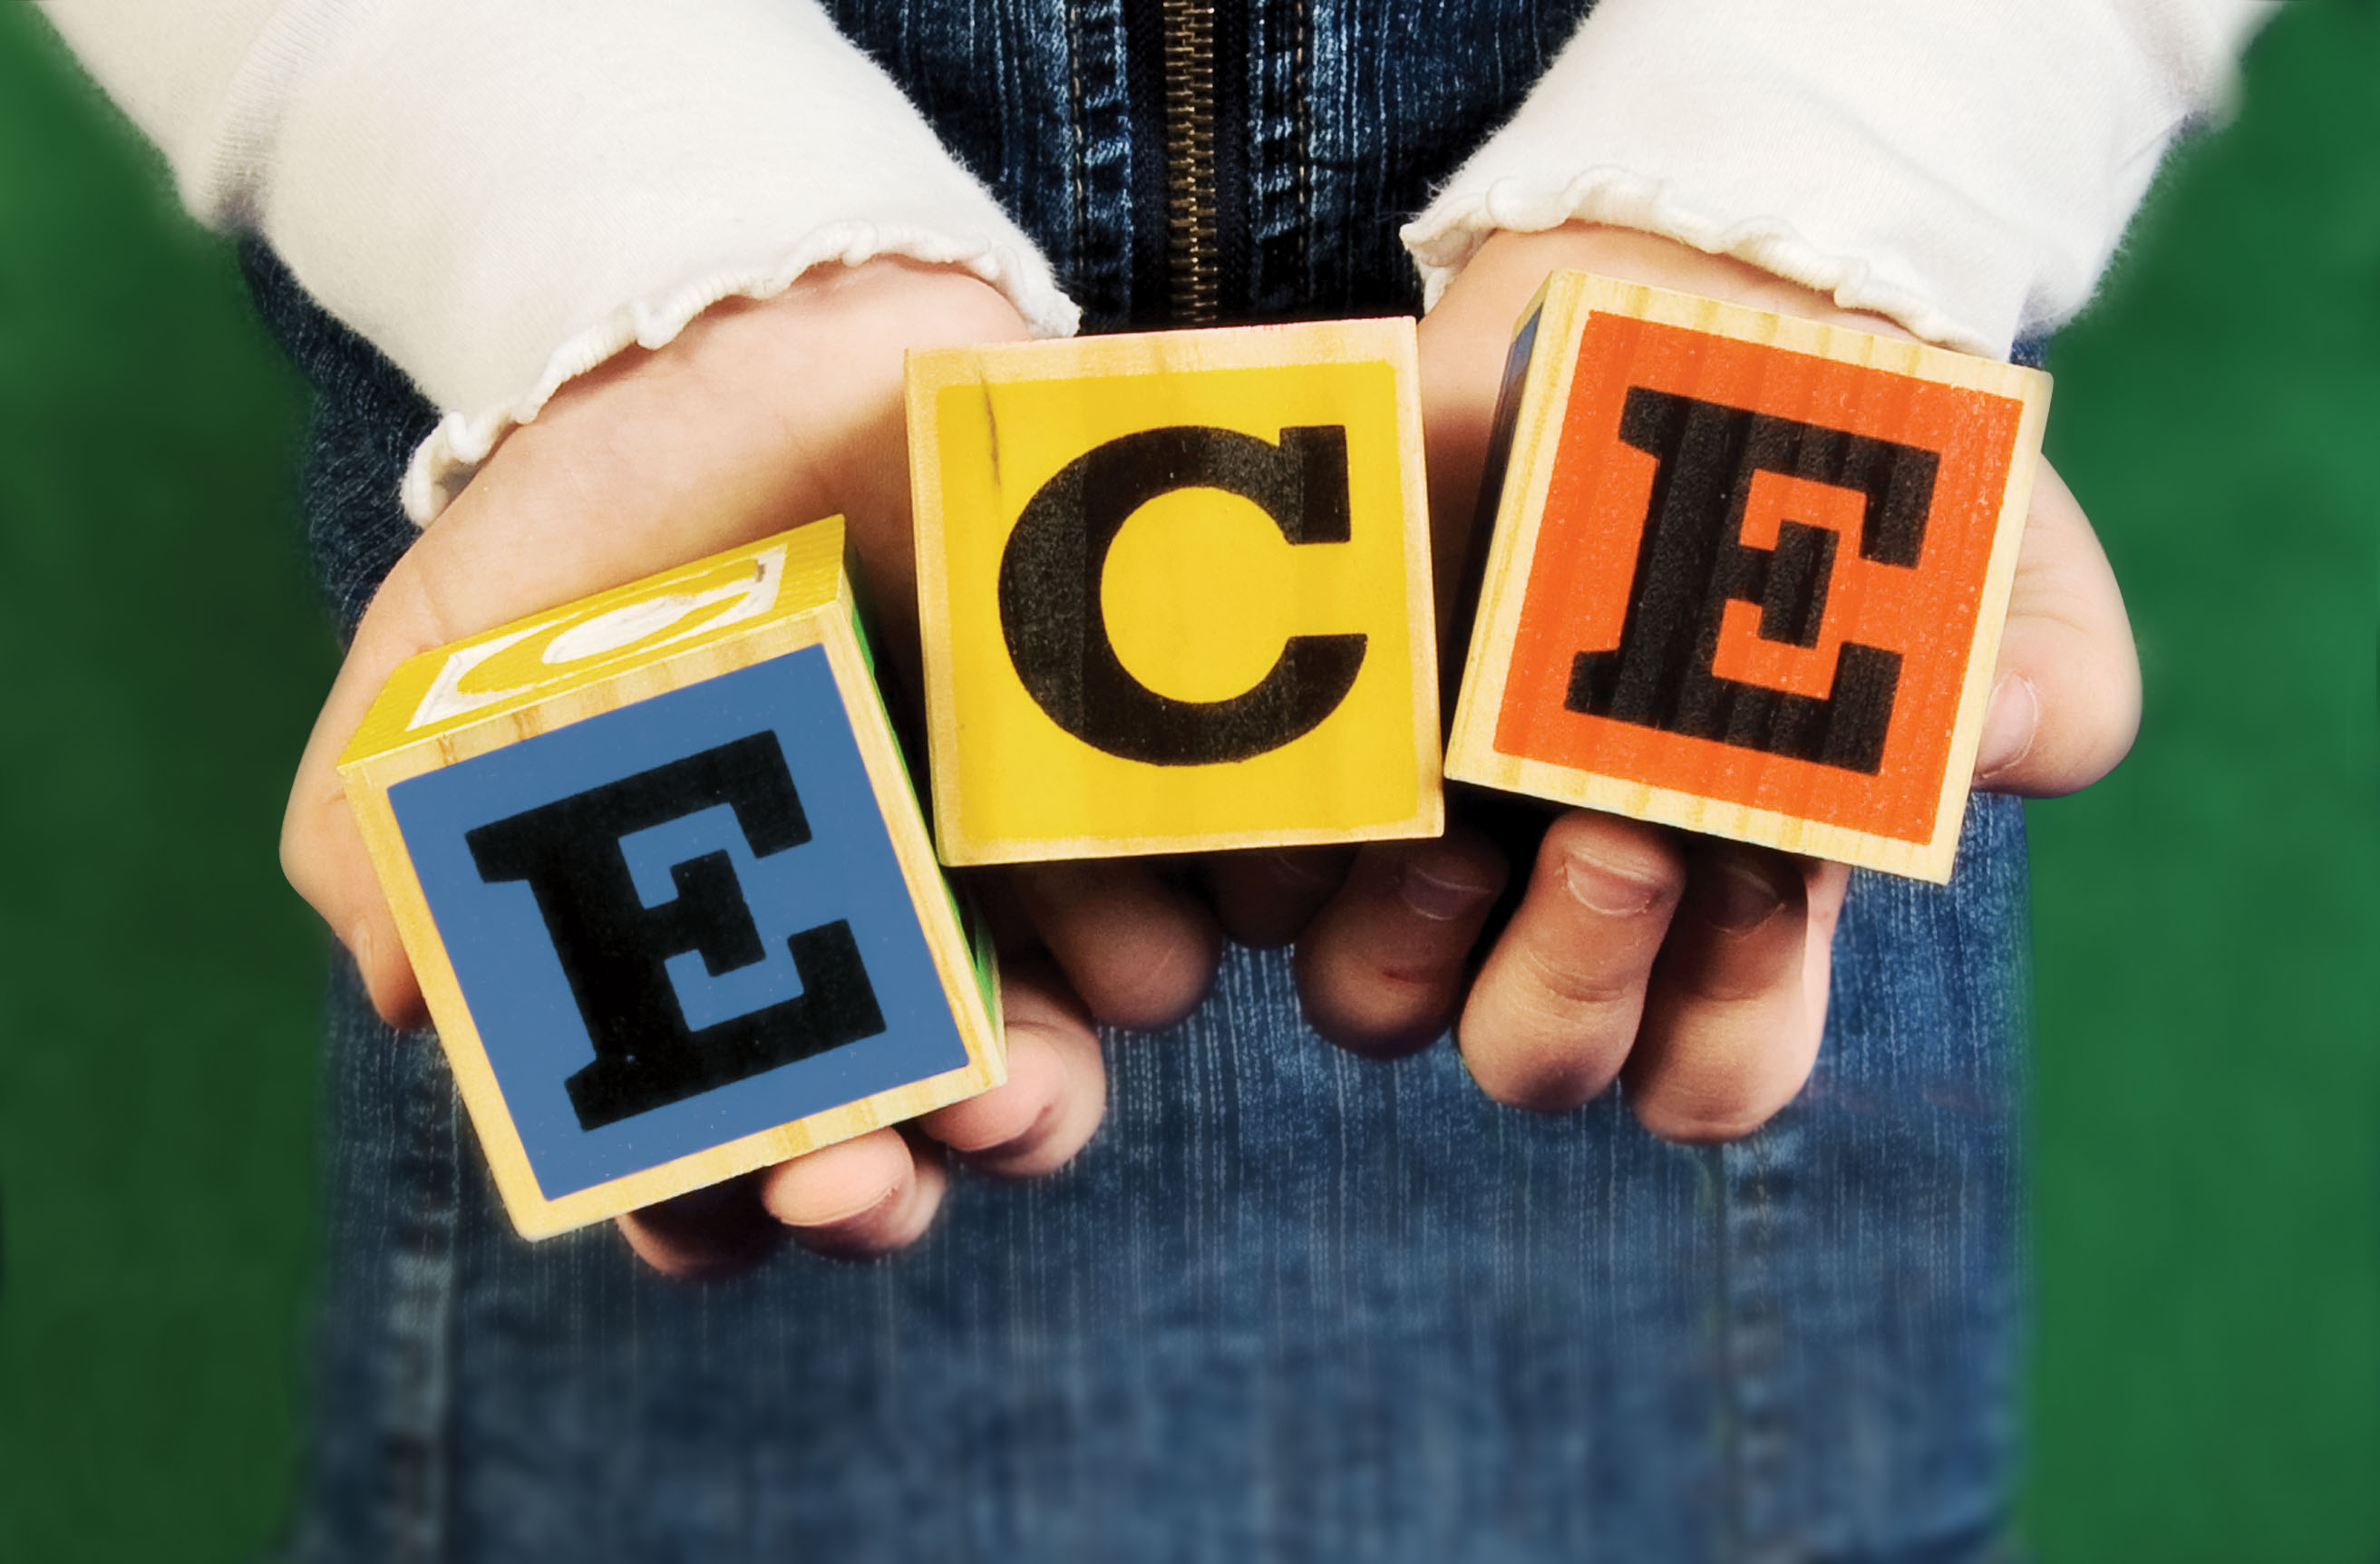 Image of toy letter blocks spelling out ECE